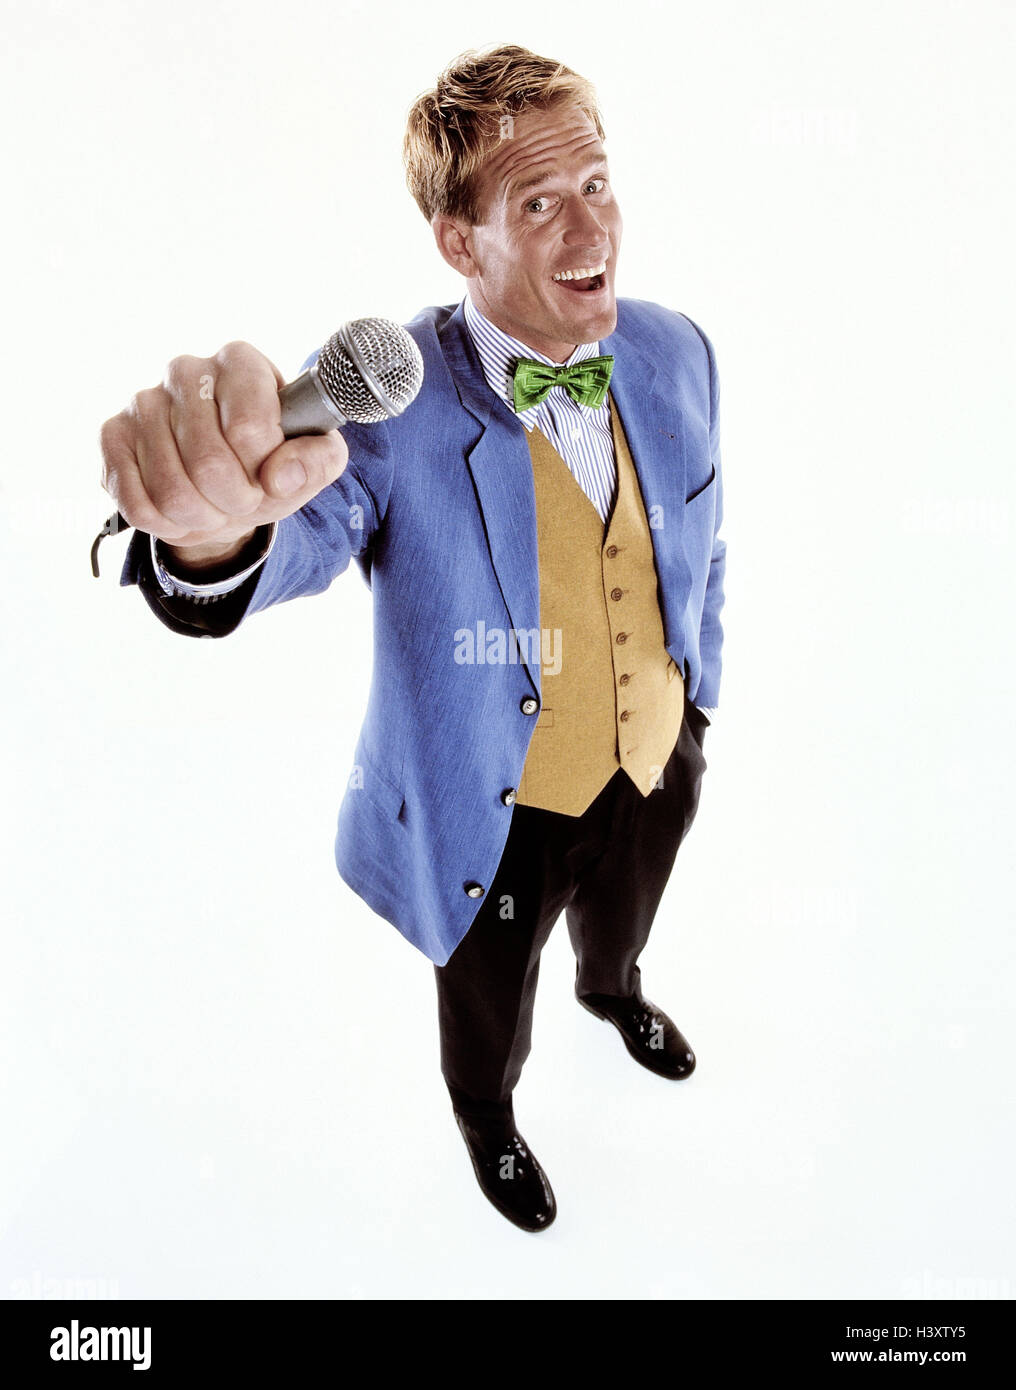 Reporters, sports jacket blue, microphone, request, interview, gesture, Men, report, journalist, man, coverage, - Stock Image